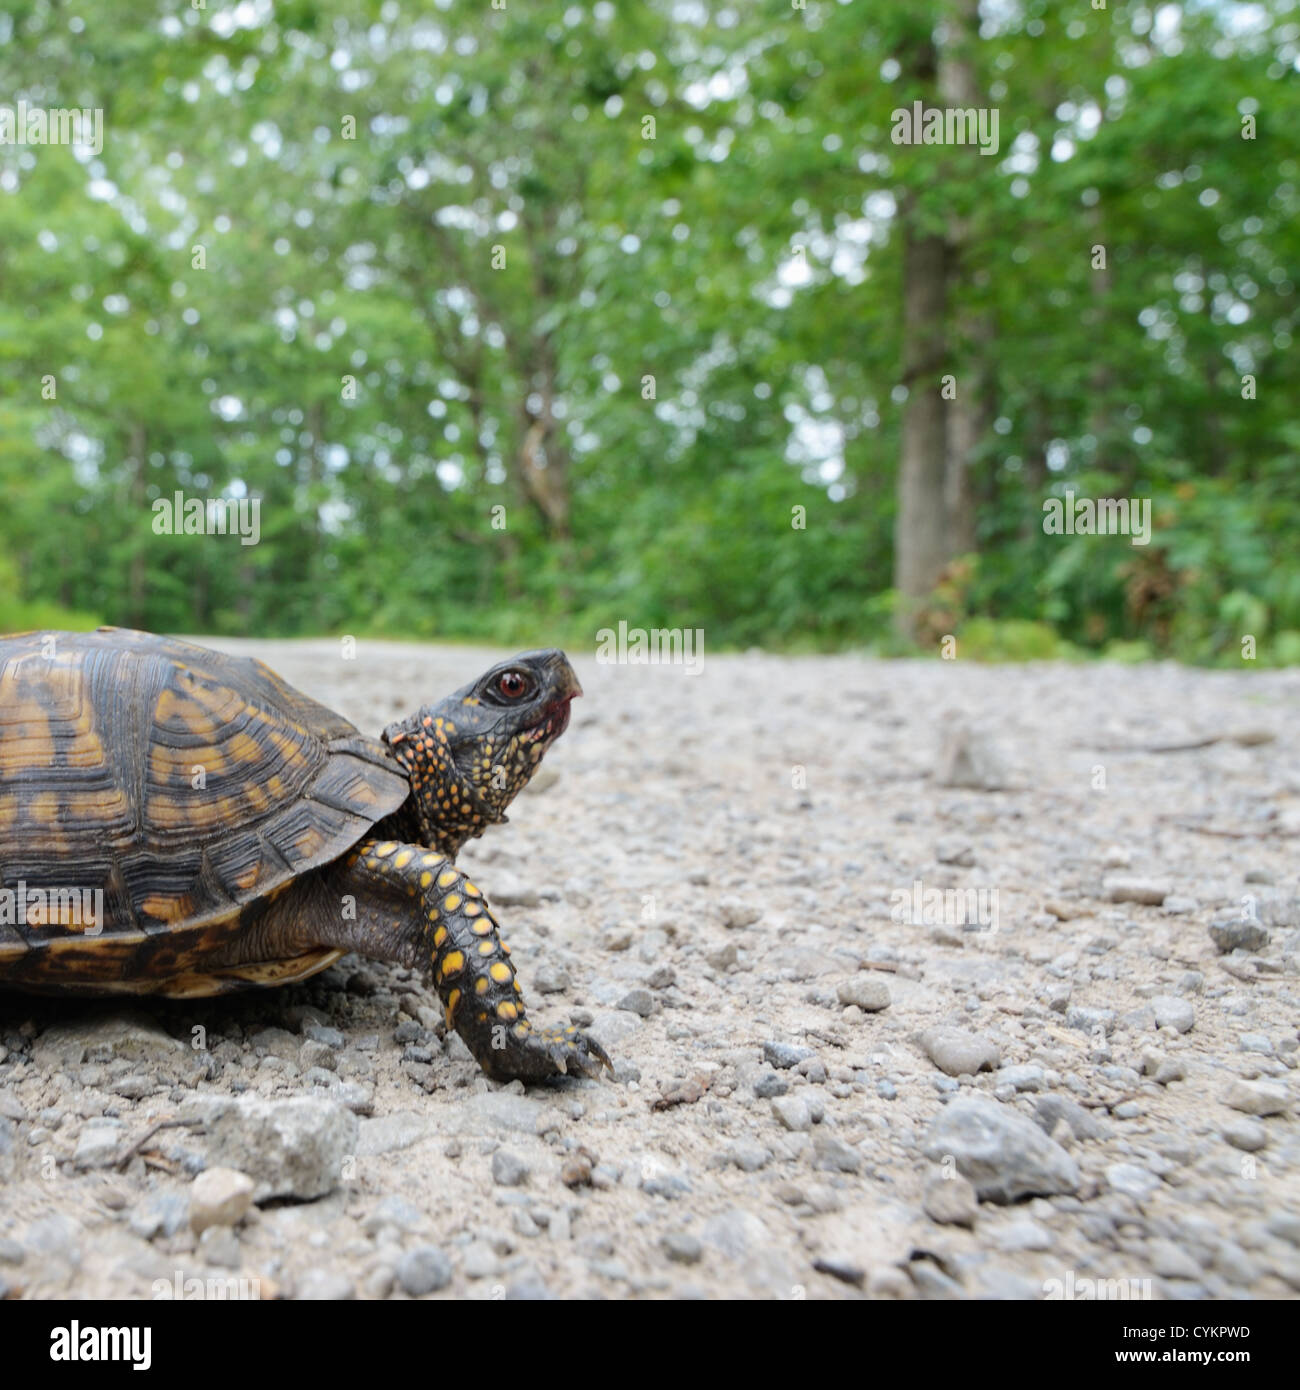 Close up of turtle walking outdoors Stock Photo